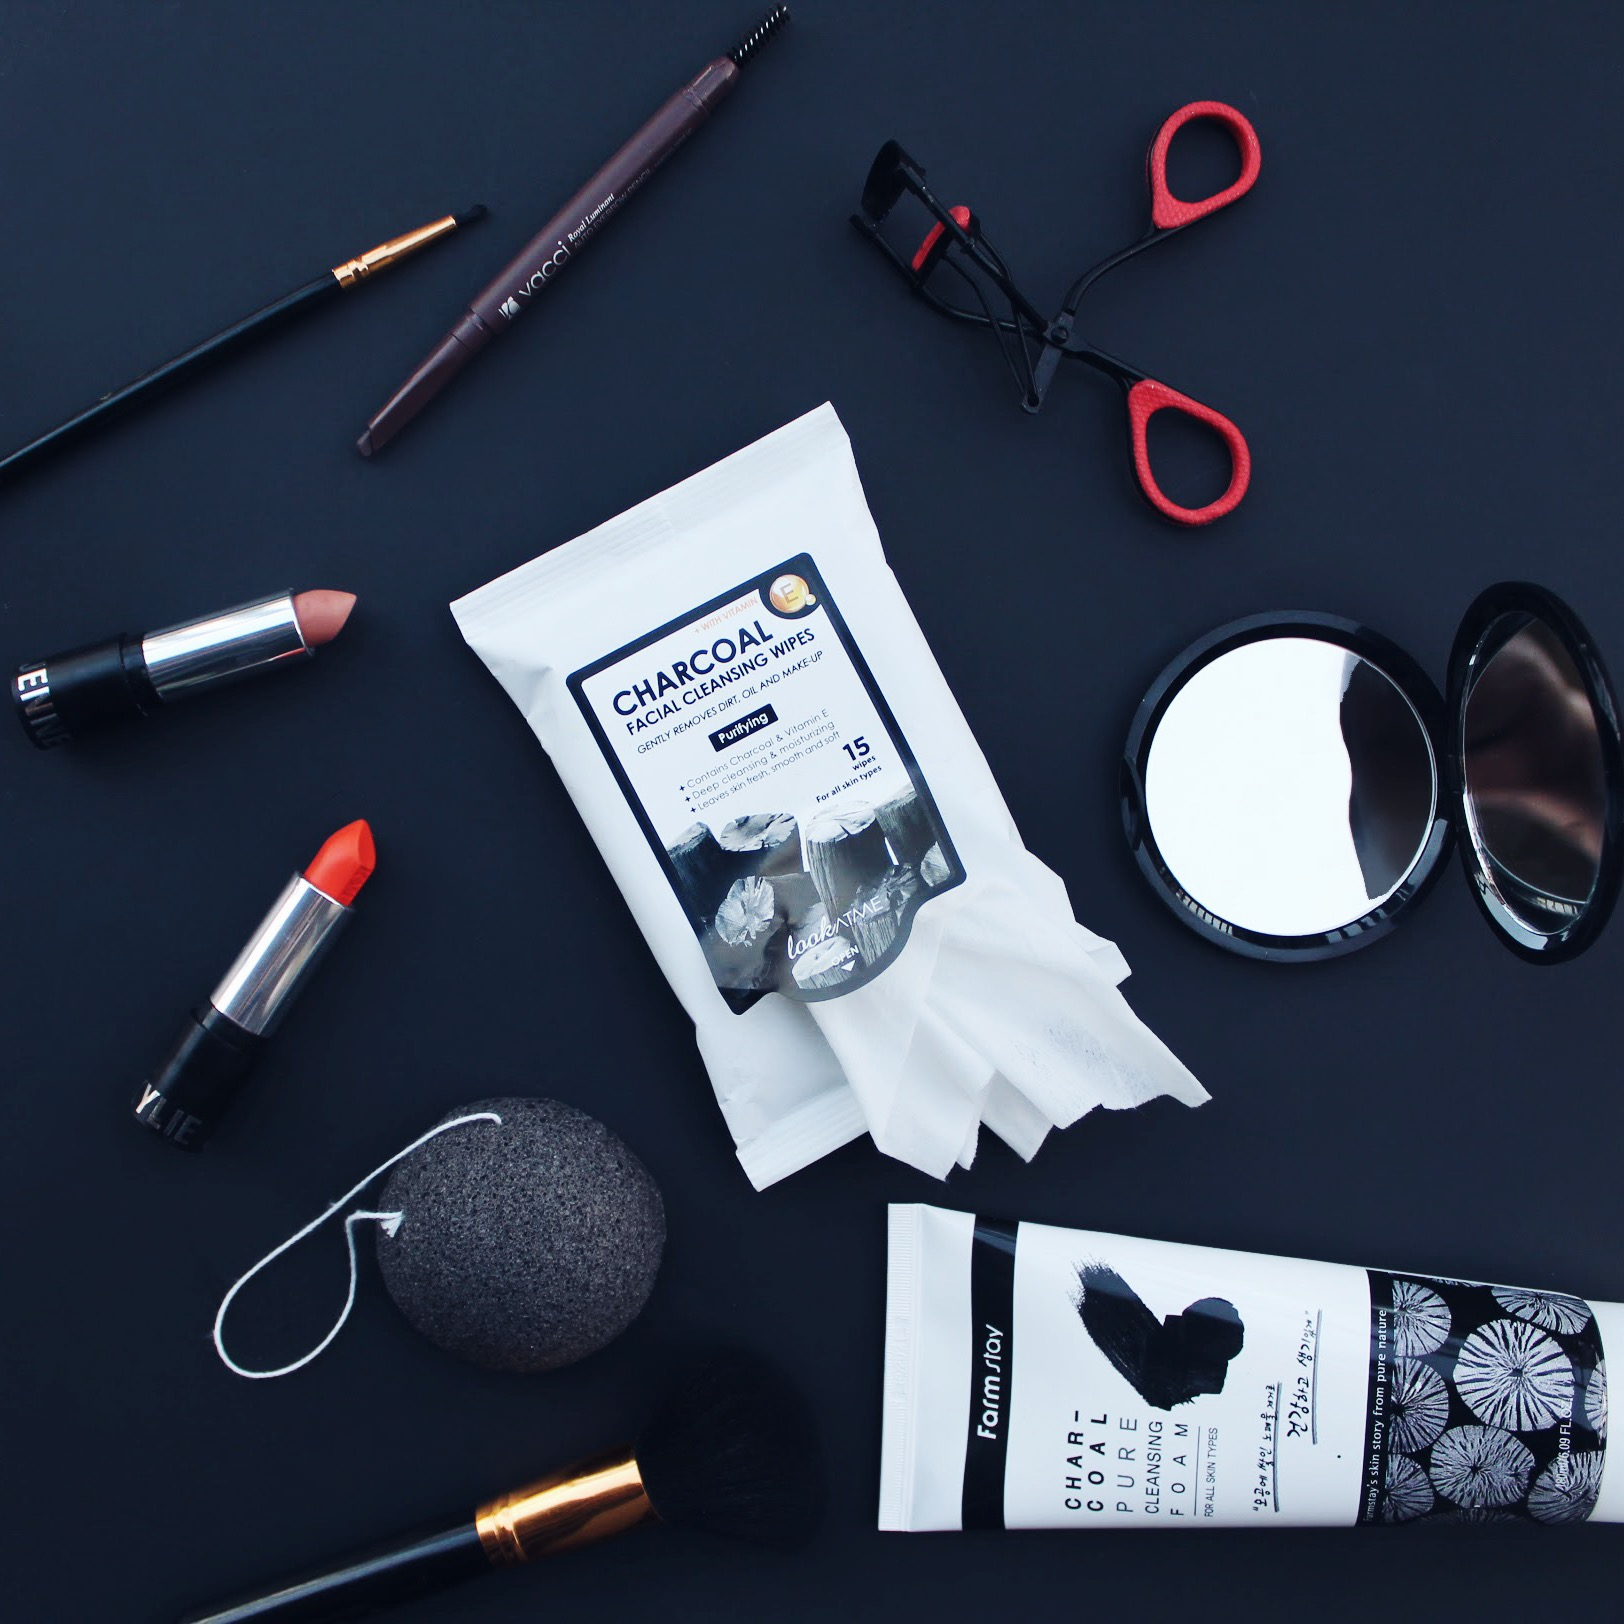 K-beauty products in photo : Auto Eyebrow Pencil, Charcoal Cleansing Wipes, Konjac Root Sponge, and Charcoal Foaming Cleanser.